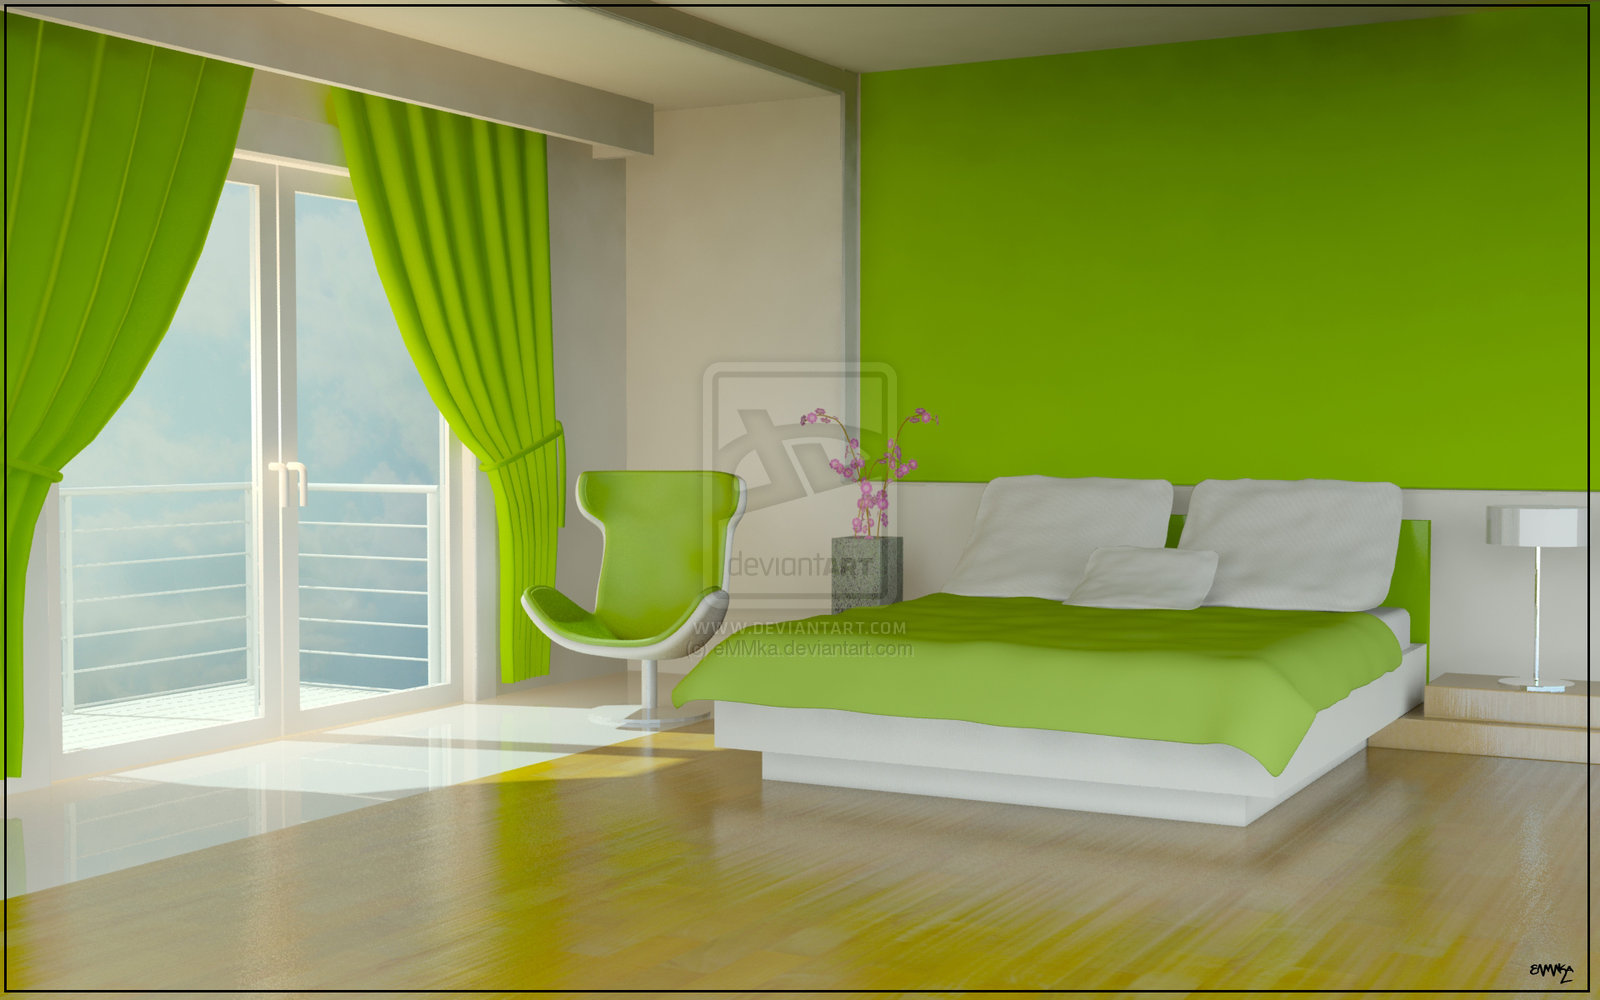 Labels: Bedroom Interior , Bedroom Interior Design , Bedrooms Design